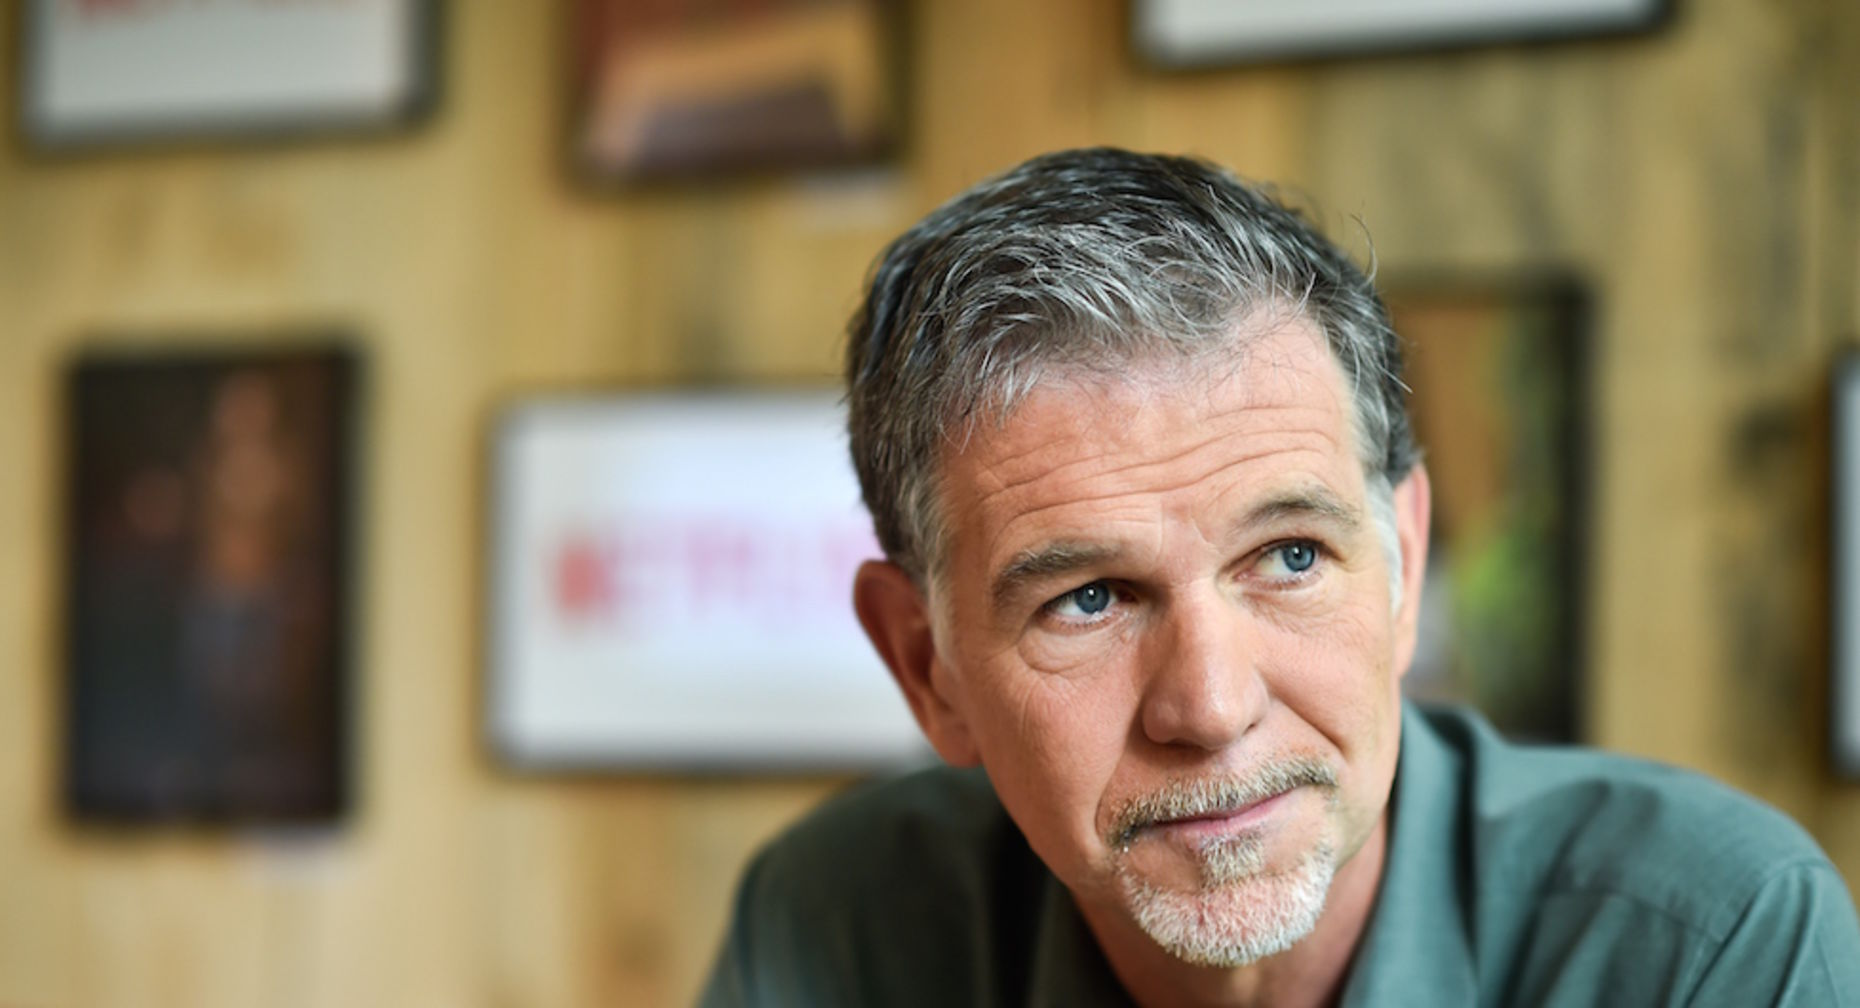 Netflix CEO Reed Hastings in Germany last month. Photo by Associated Press.